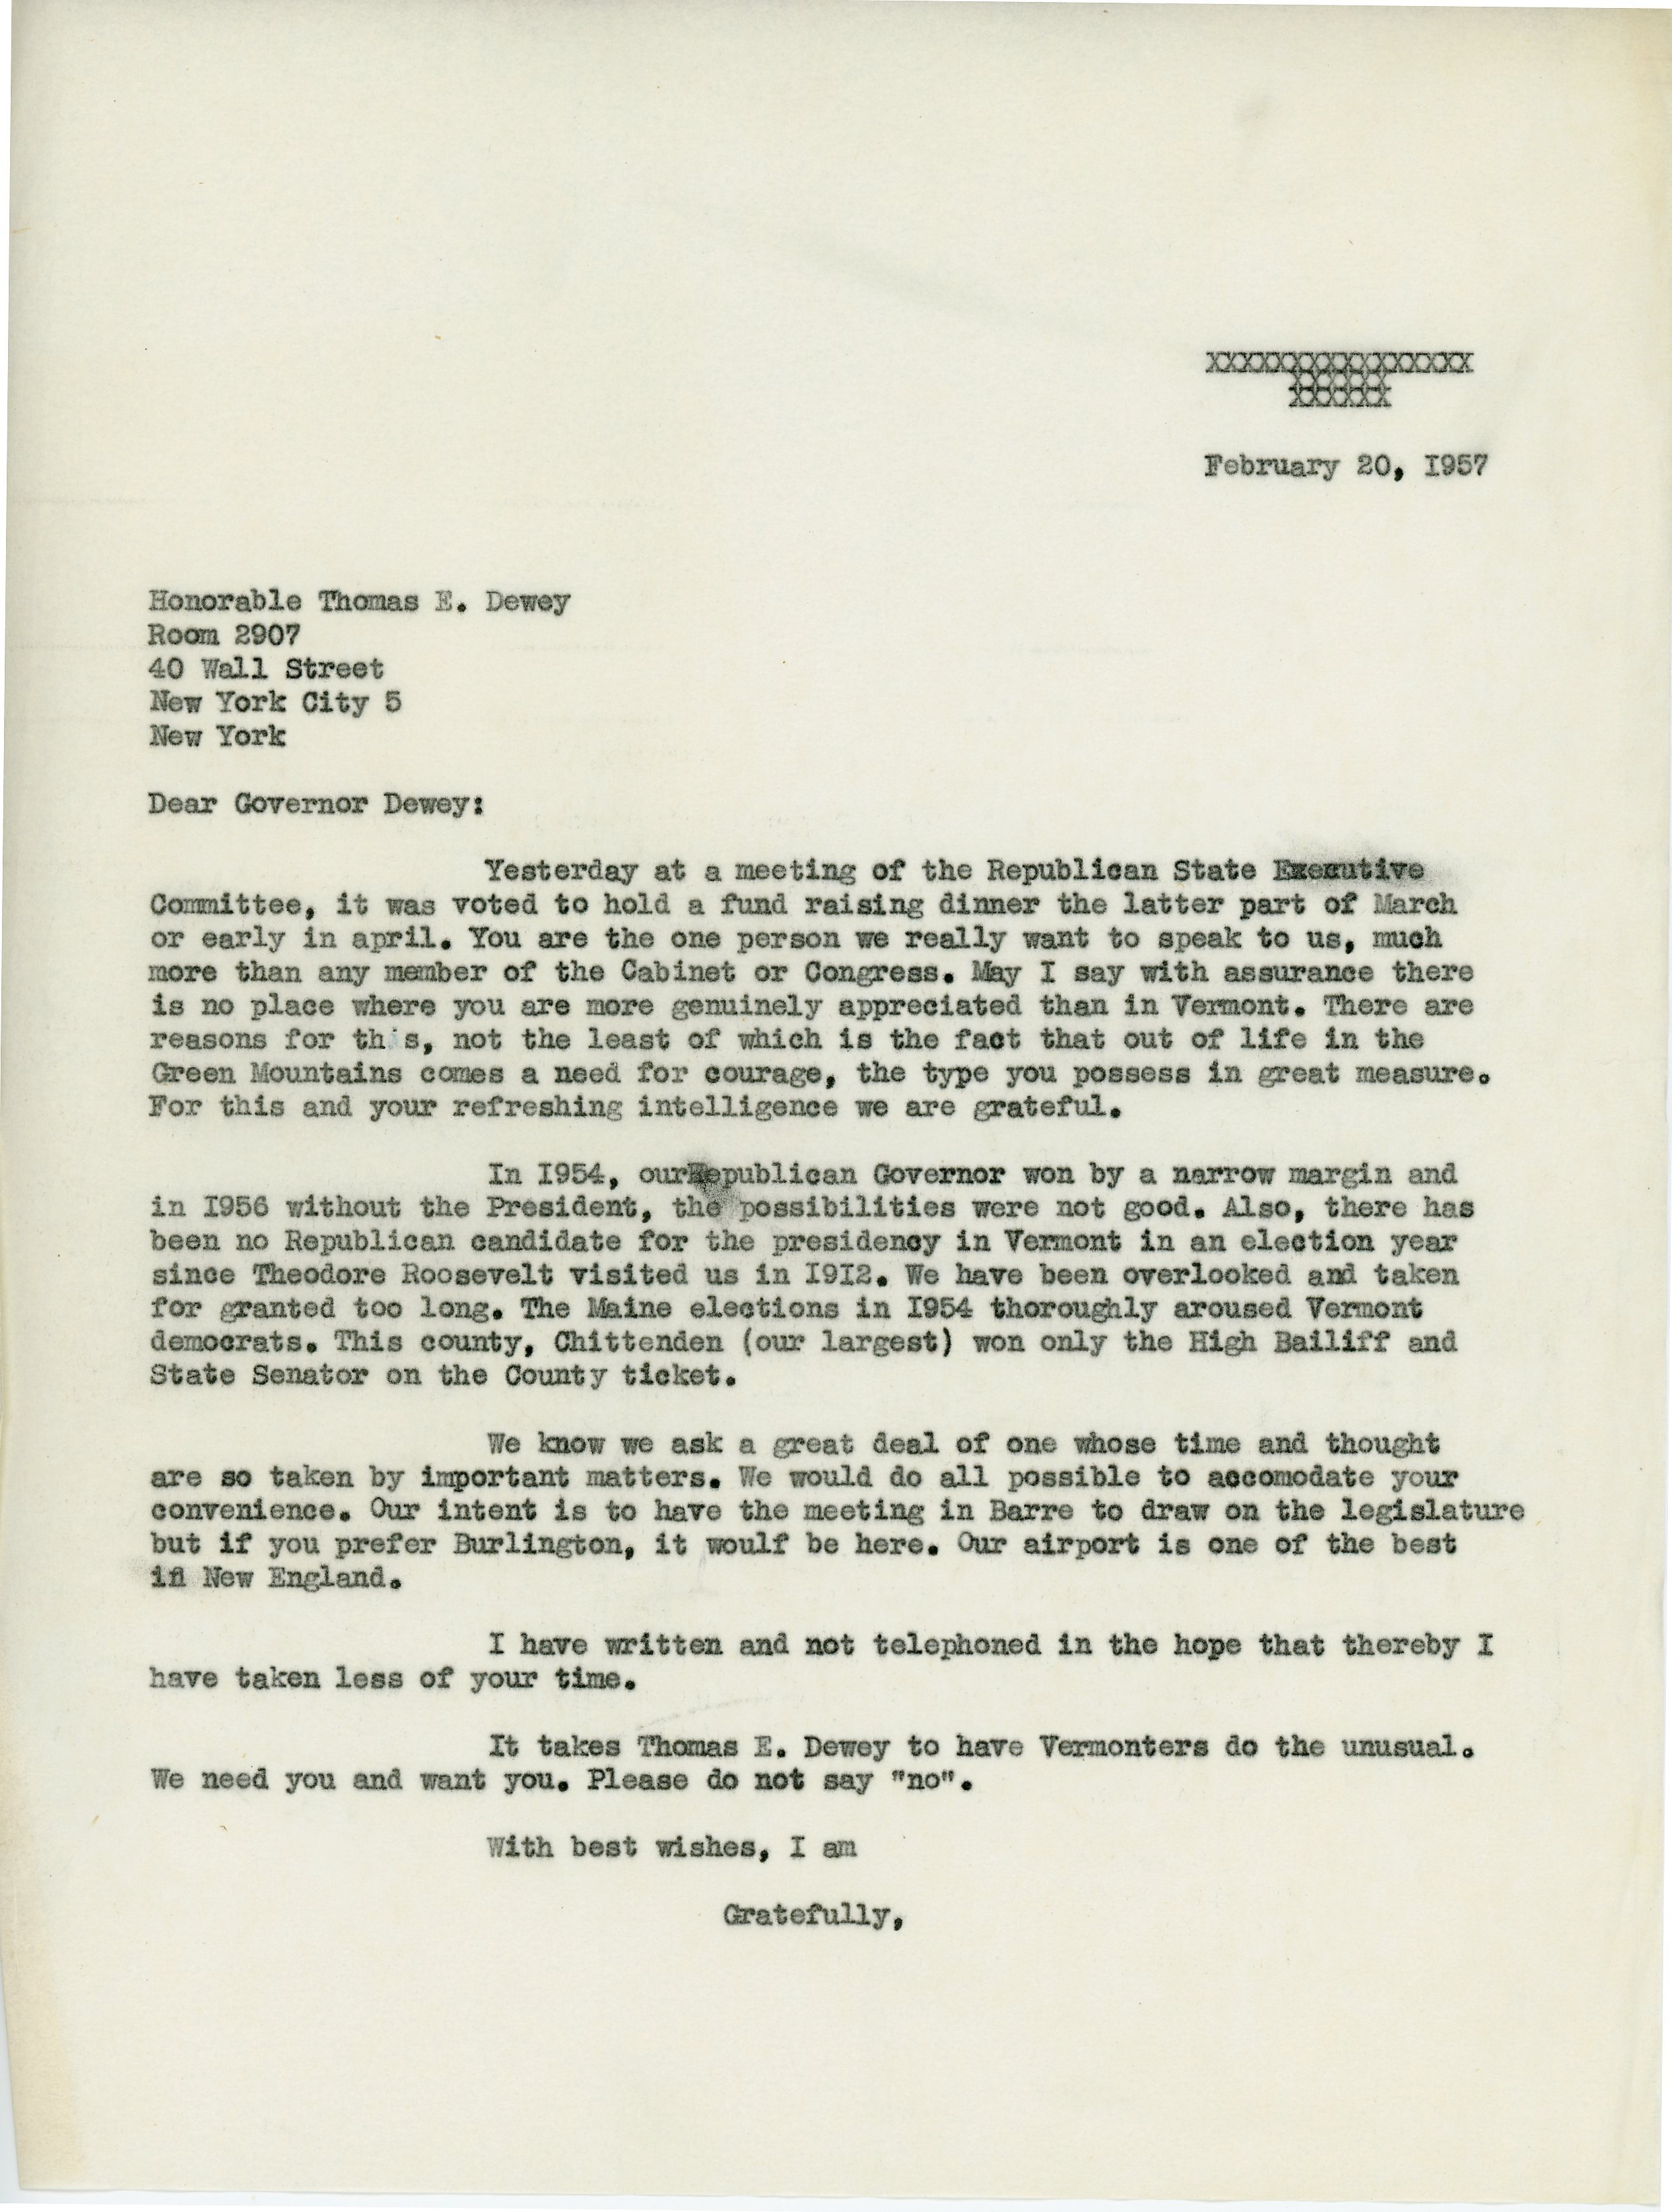 Letter from Consuelo Northrop Bailey to Thomas Dewey, 1957 February 20